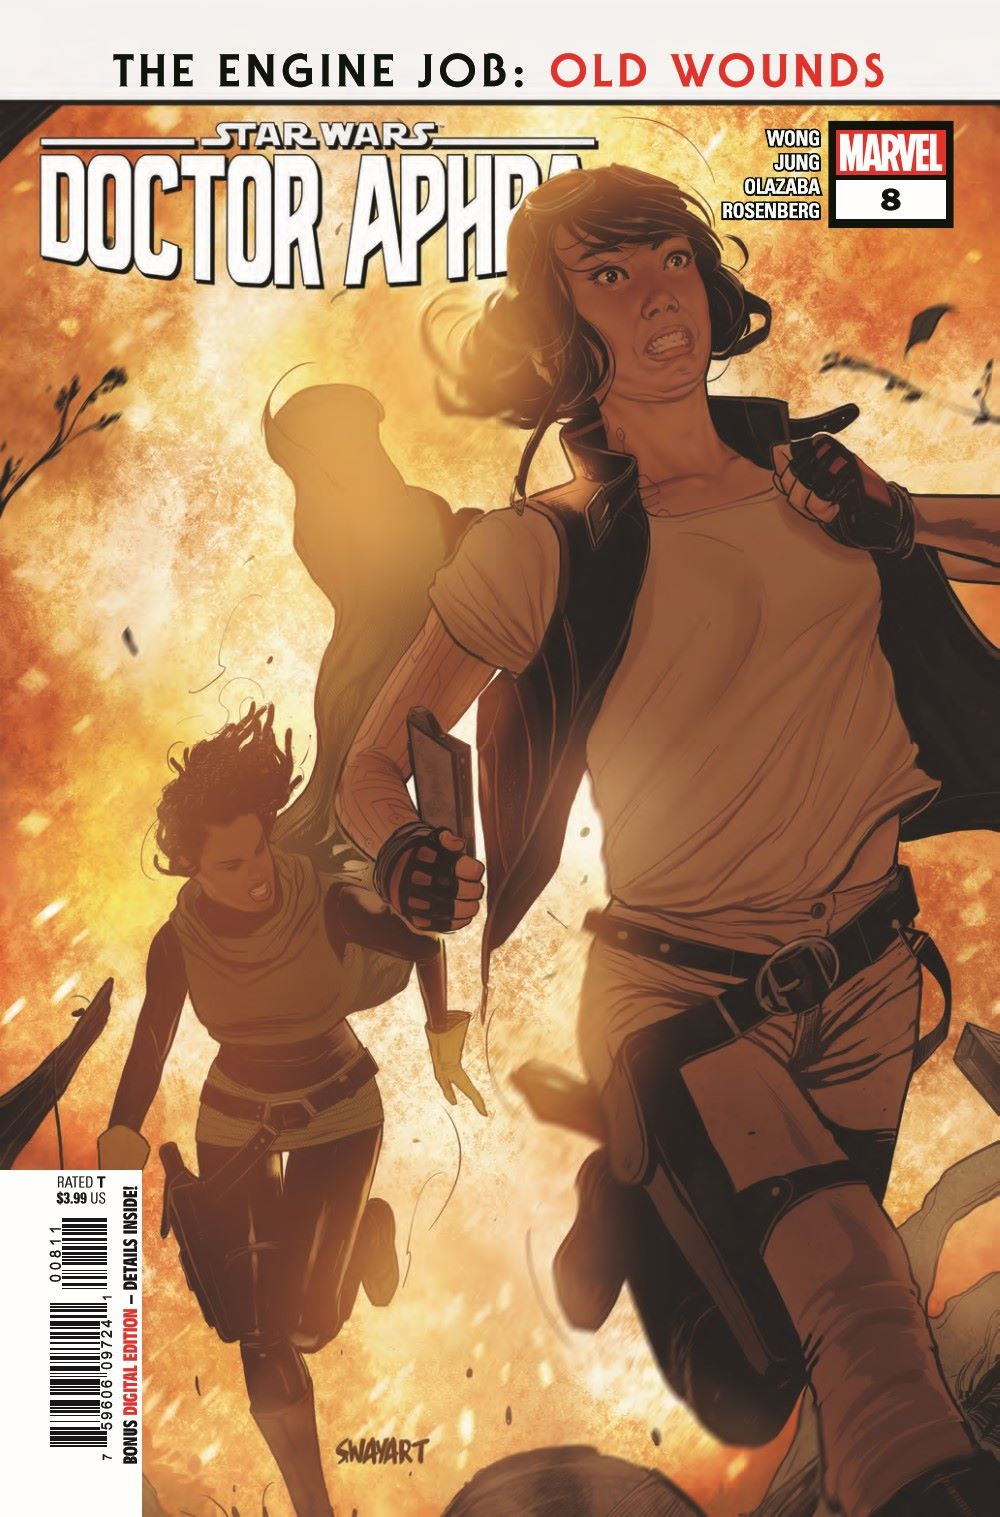 STWAPHRA2020008_Preview-1 ComicList Previews: STAR WARS DOCTOR APHRA #8